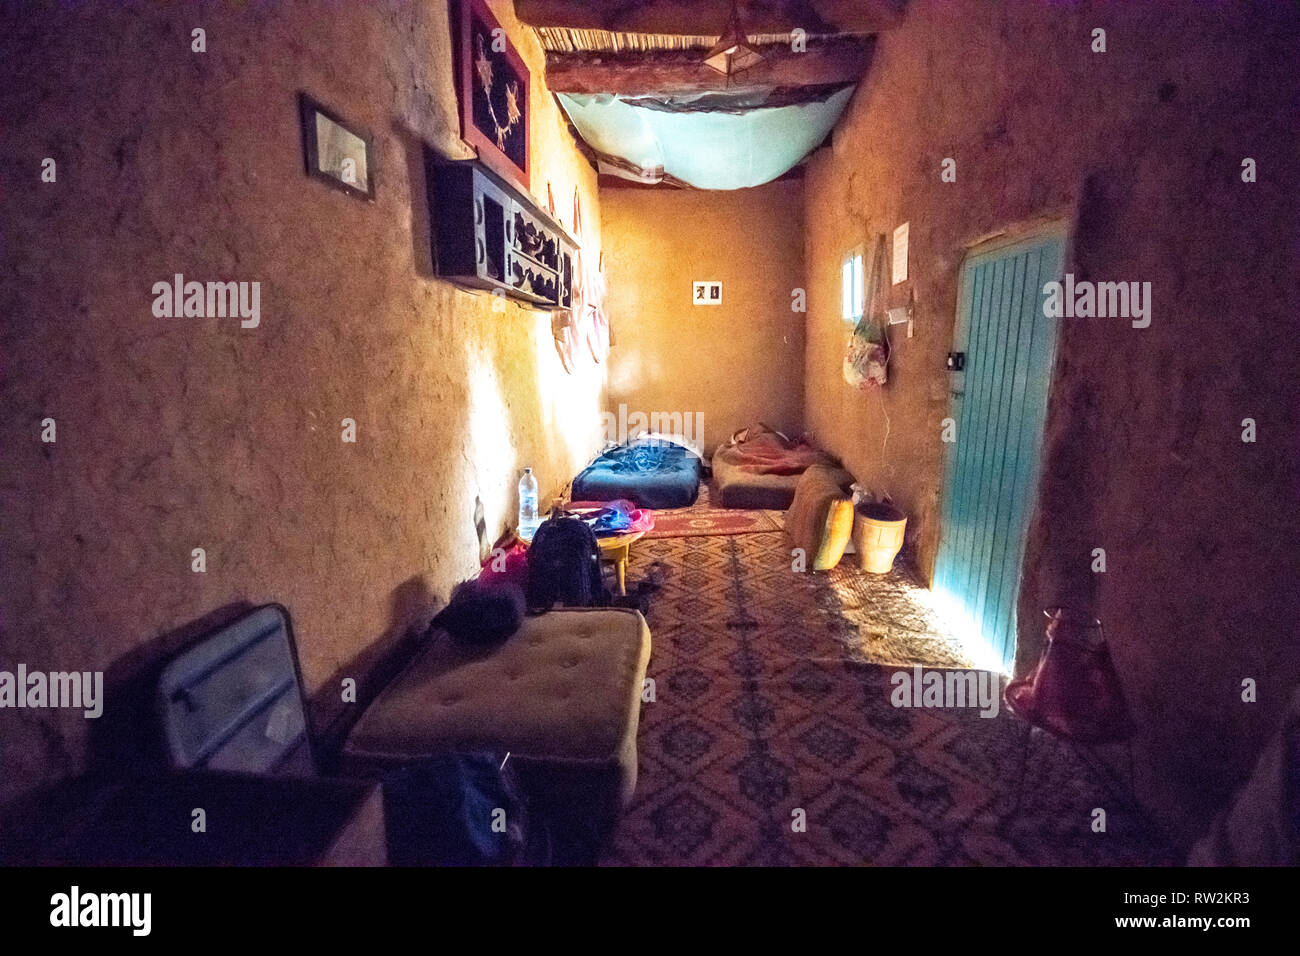 Interior Of Small Bedroom With Two Mattresses On Floor Of Traditional Mud Brick Built House In Tighmert Oasis Morocco Stock Photo Alamy